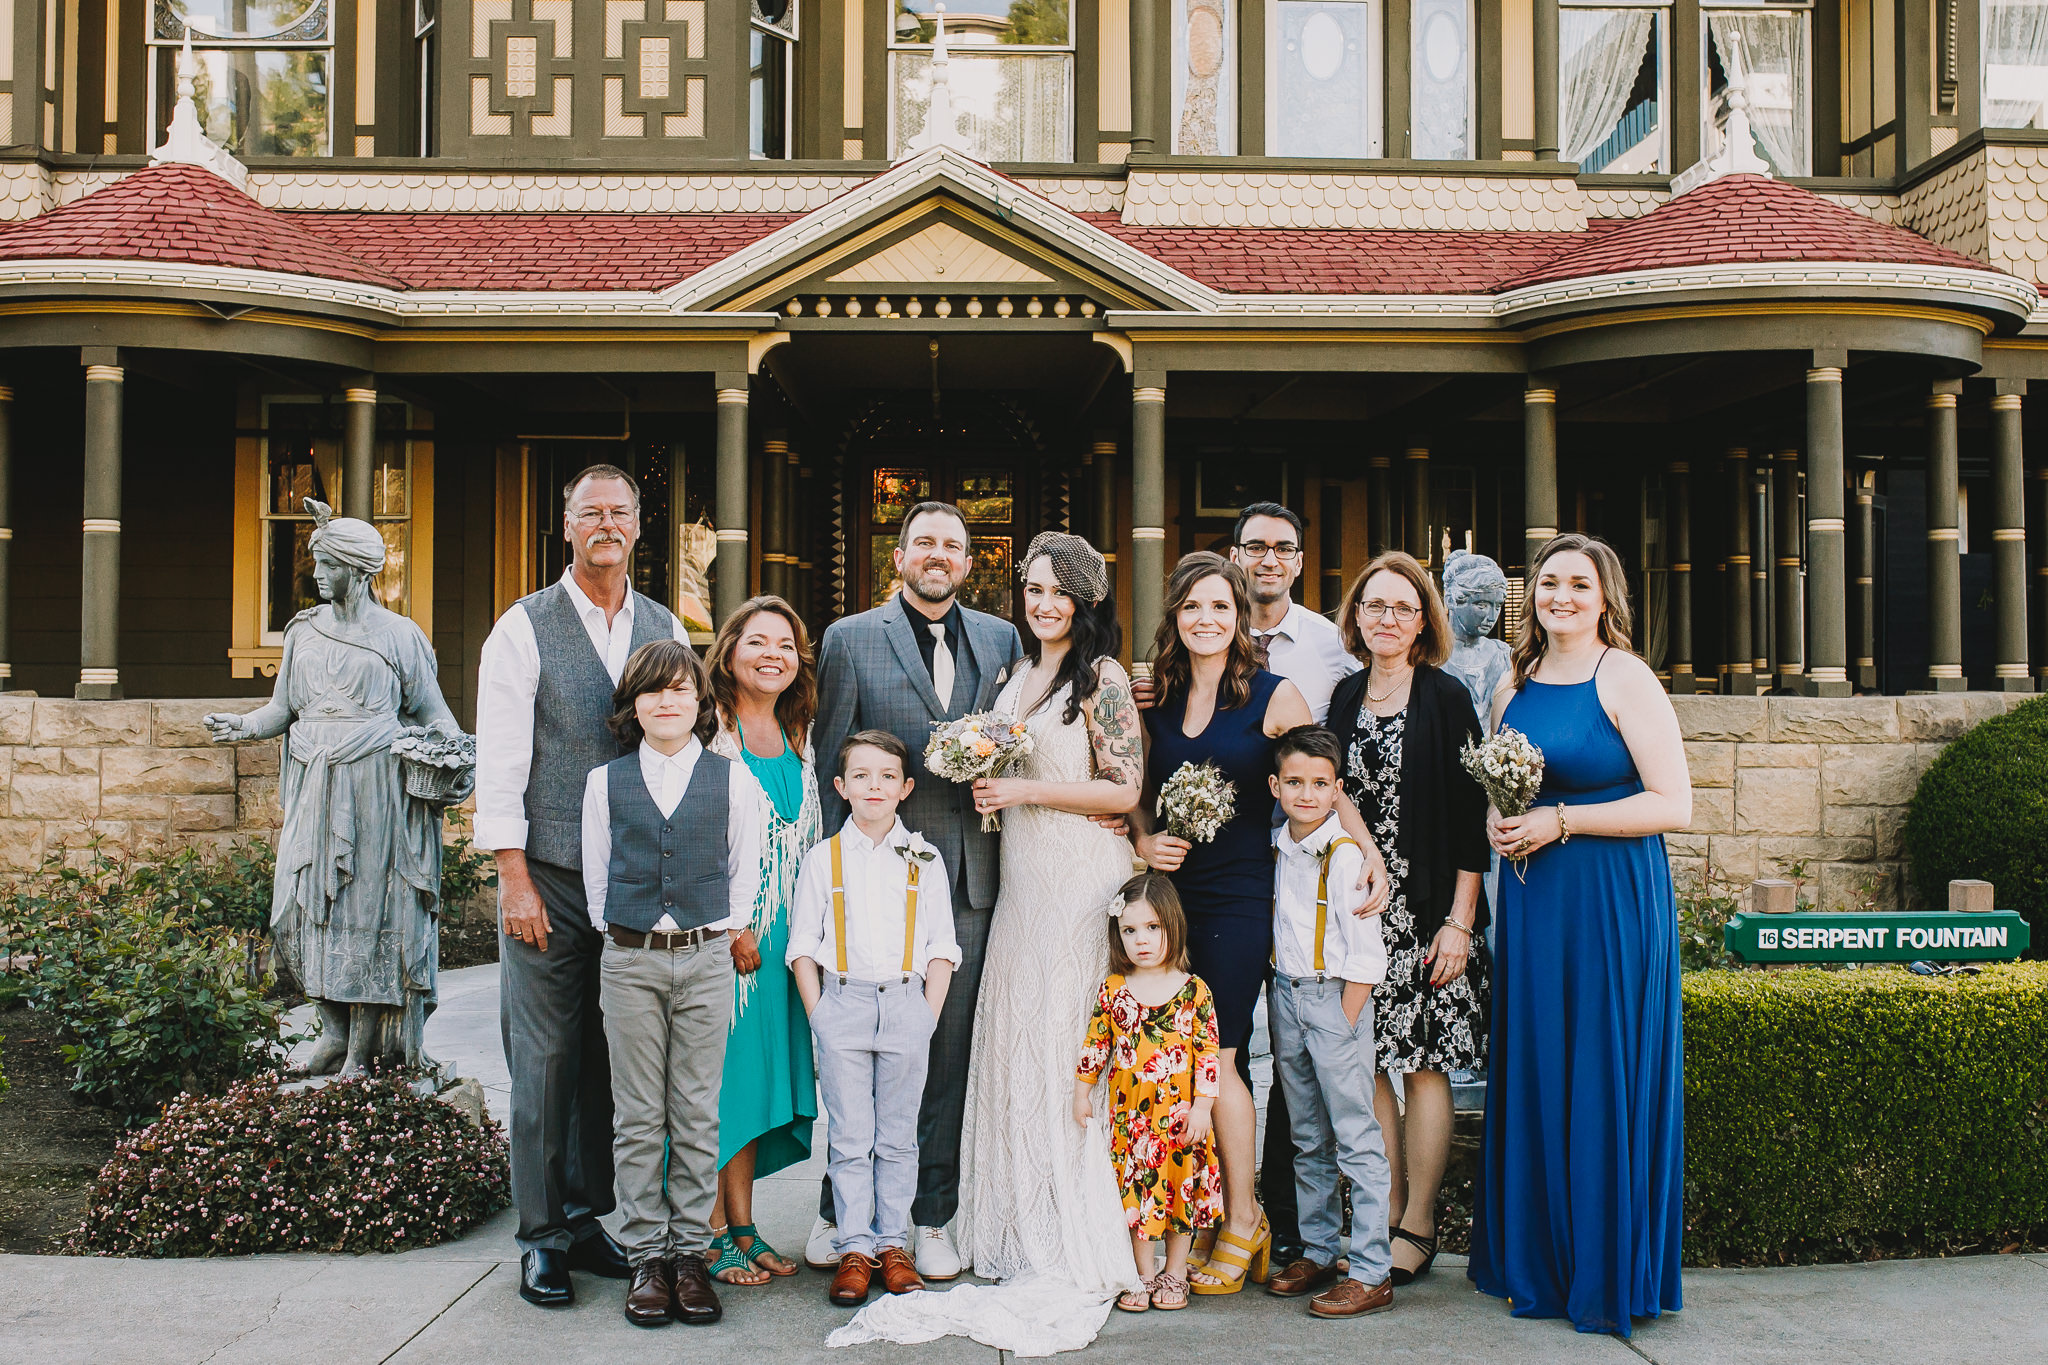 Archer Inspired Photography Sara and Aaron Winchester Mystery House NorCal San Jose California Wedding Photographer-236.jpg